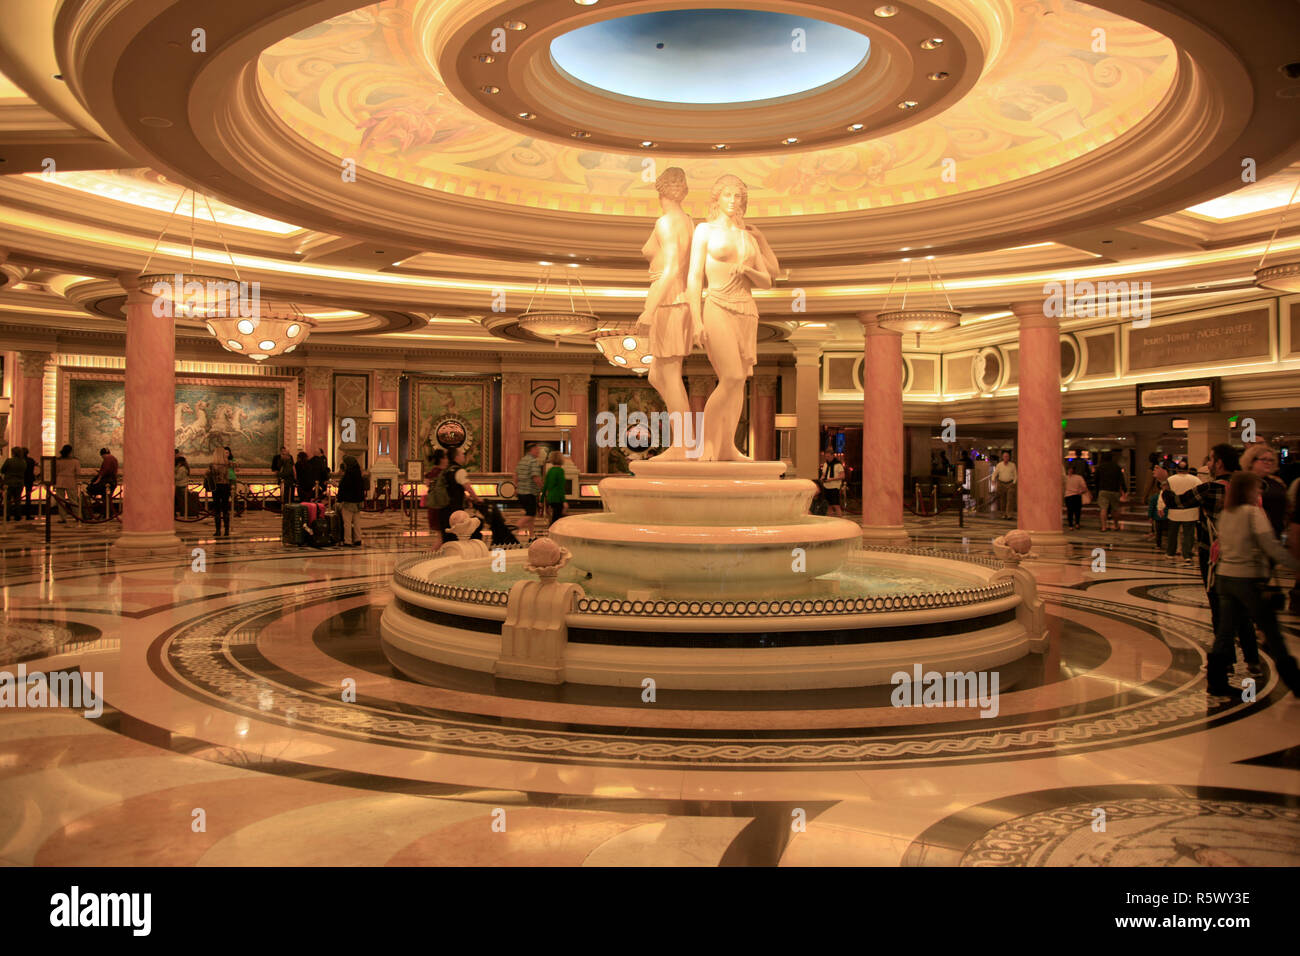 People At The Check In Desks And Foyer At Caesars Palace